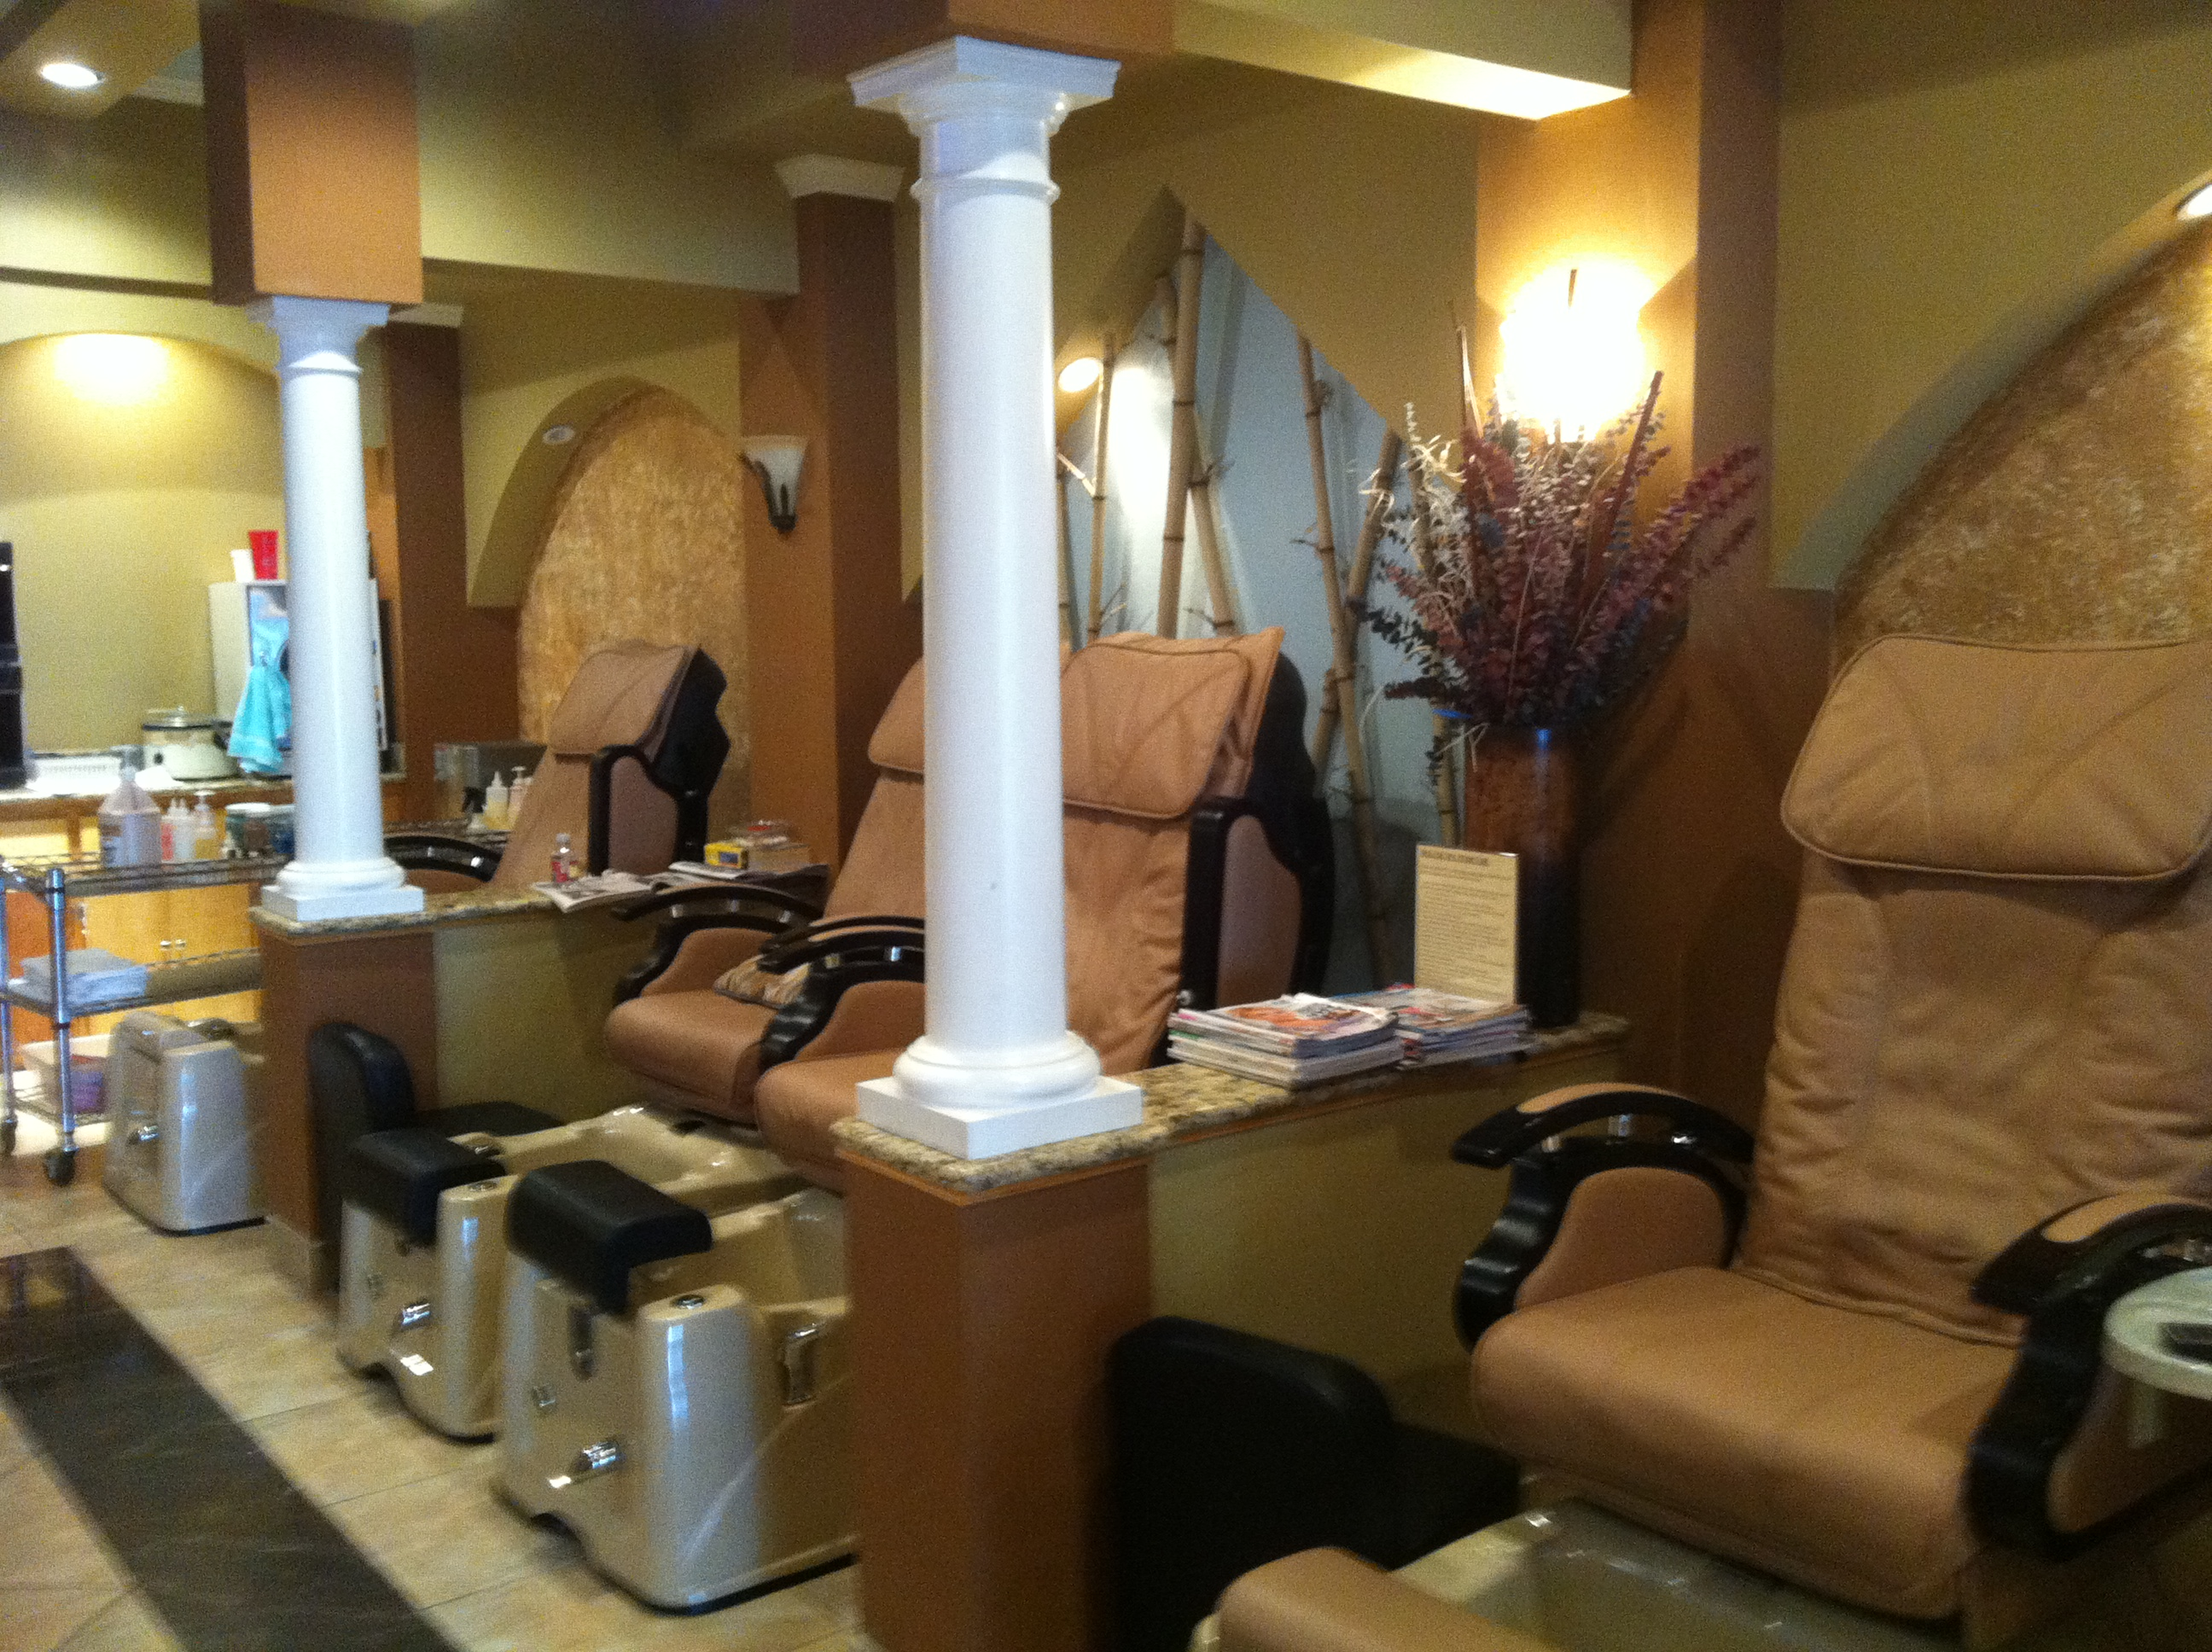 Luxury Nails & Spa 5741 Youree Dr, Shreveport, LA 71105 - YP.com